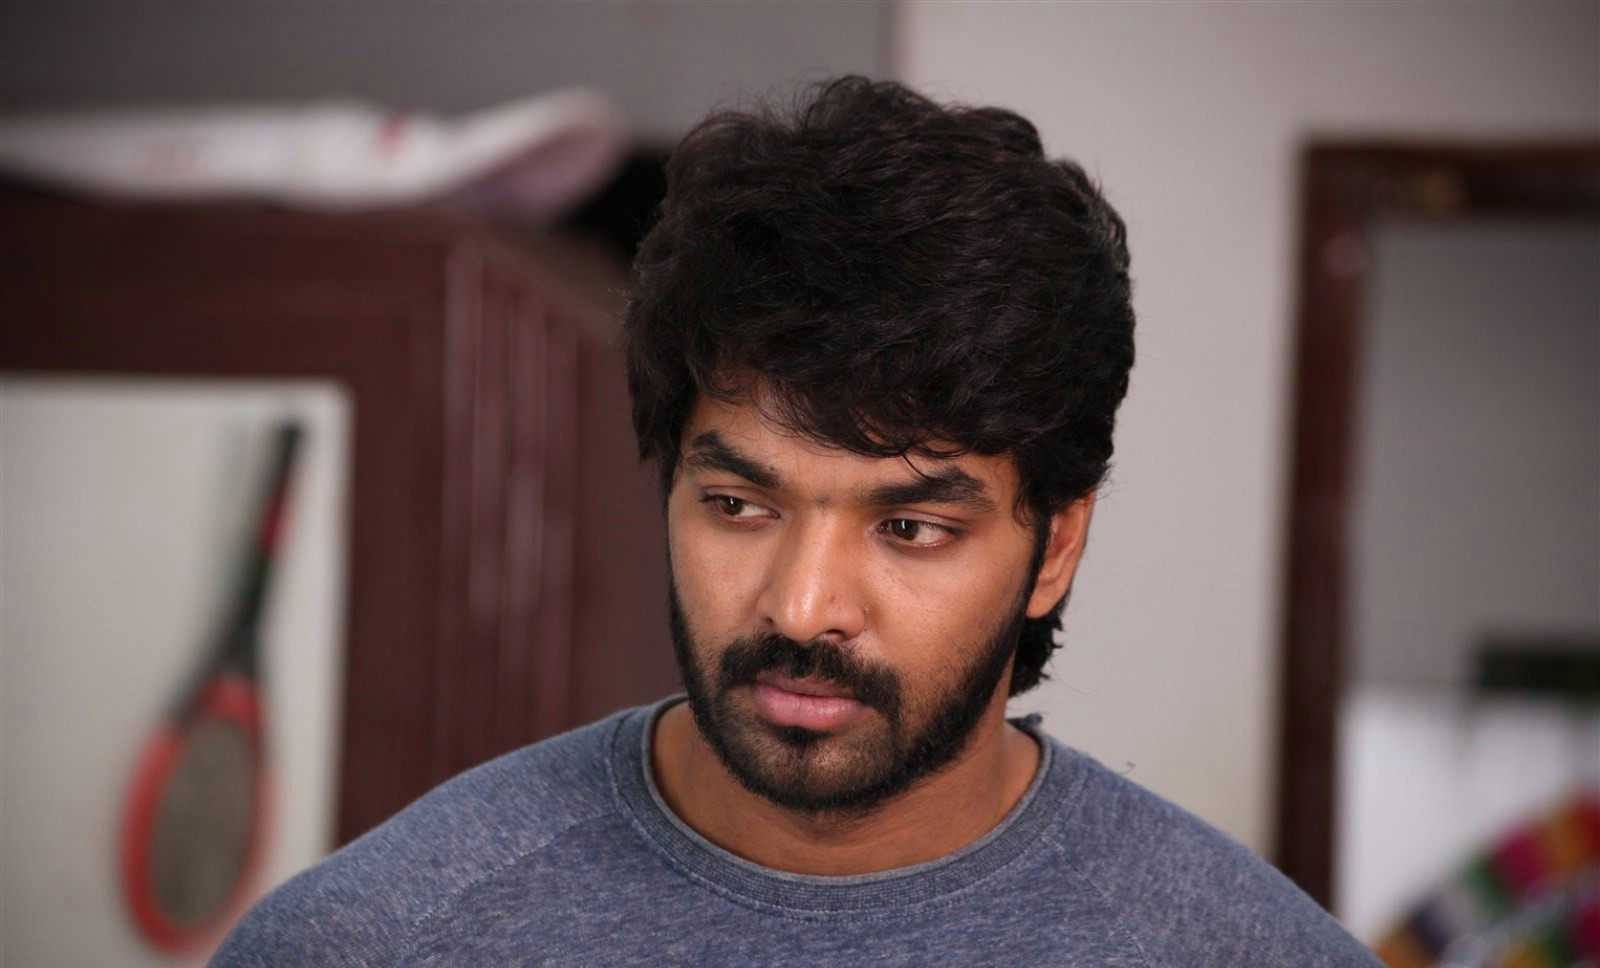 Chennai Court issued Unbailable Arrest Warrant against Actor Jai for Drunk and Drive case!